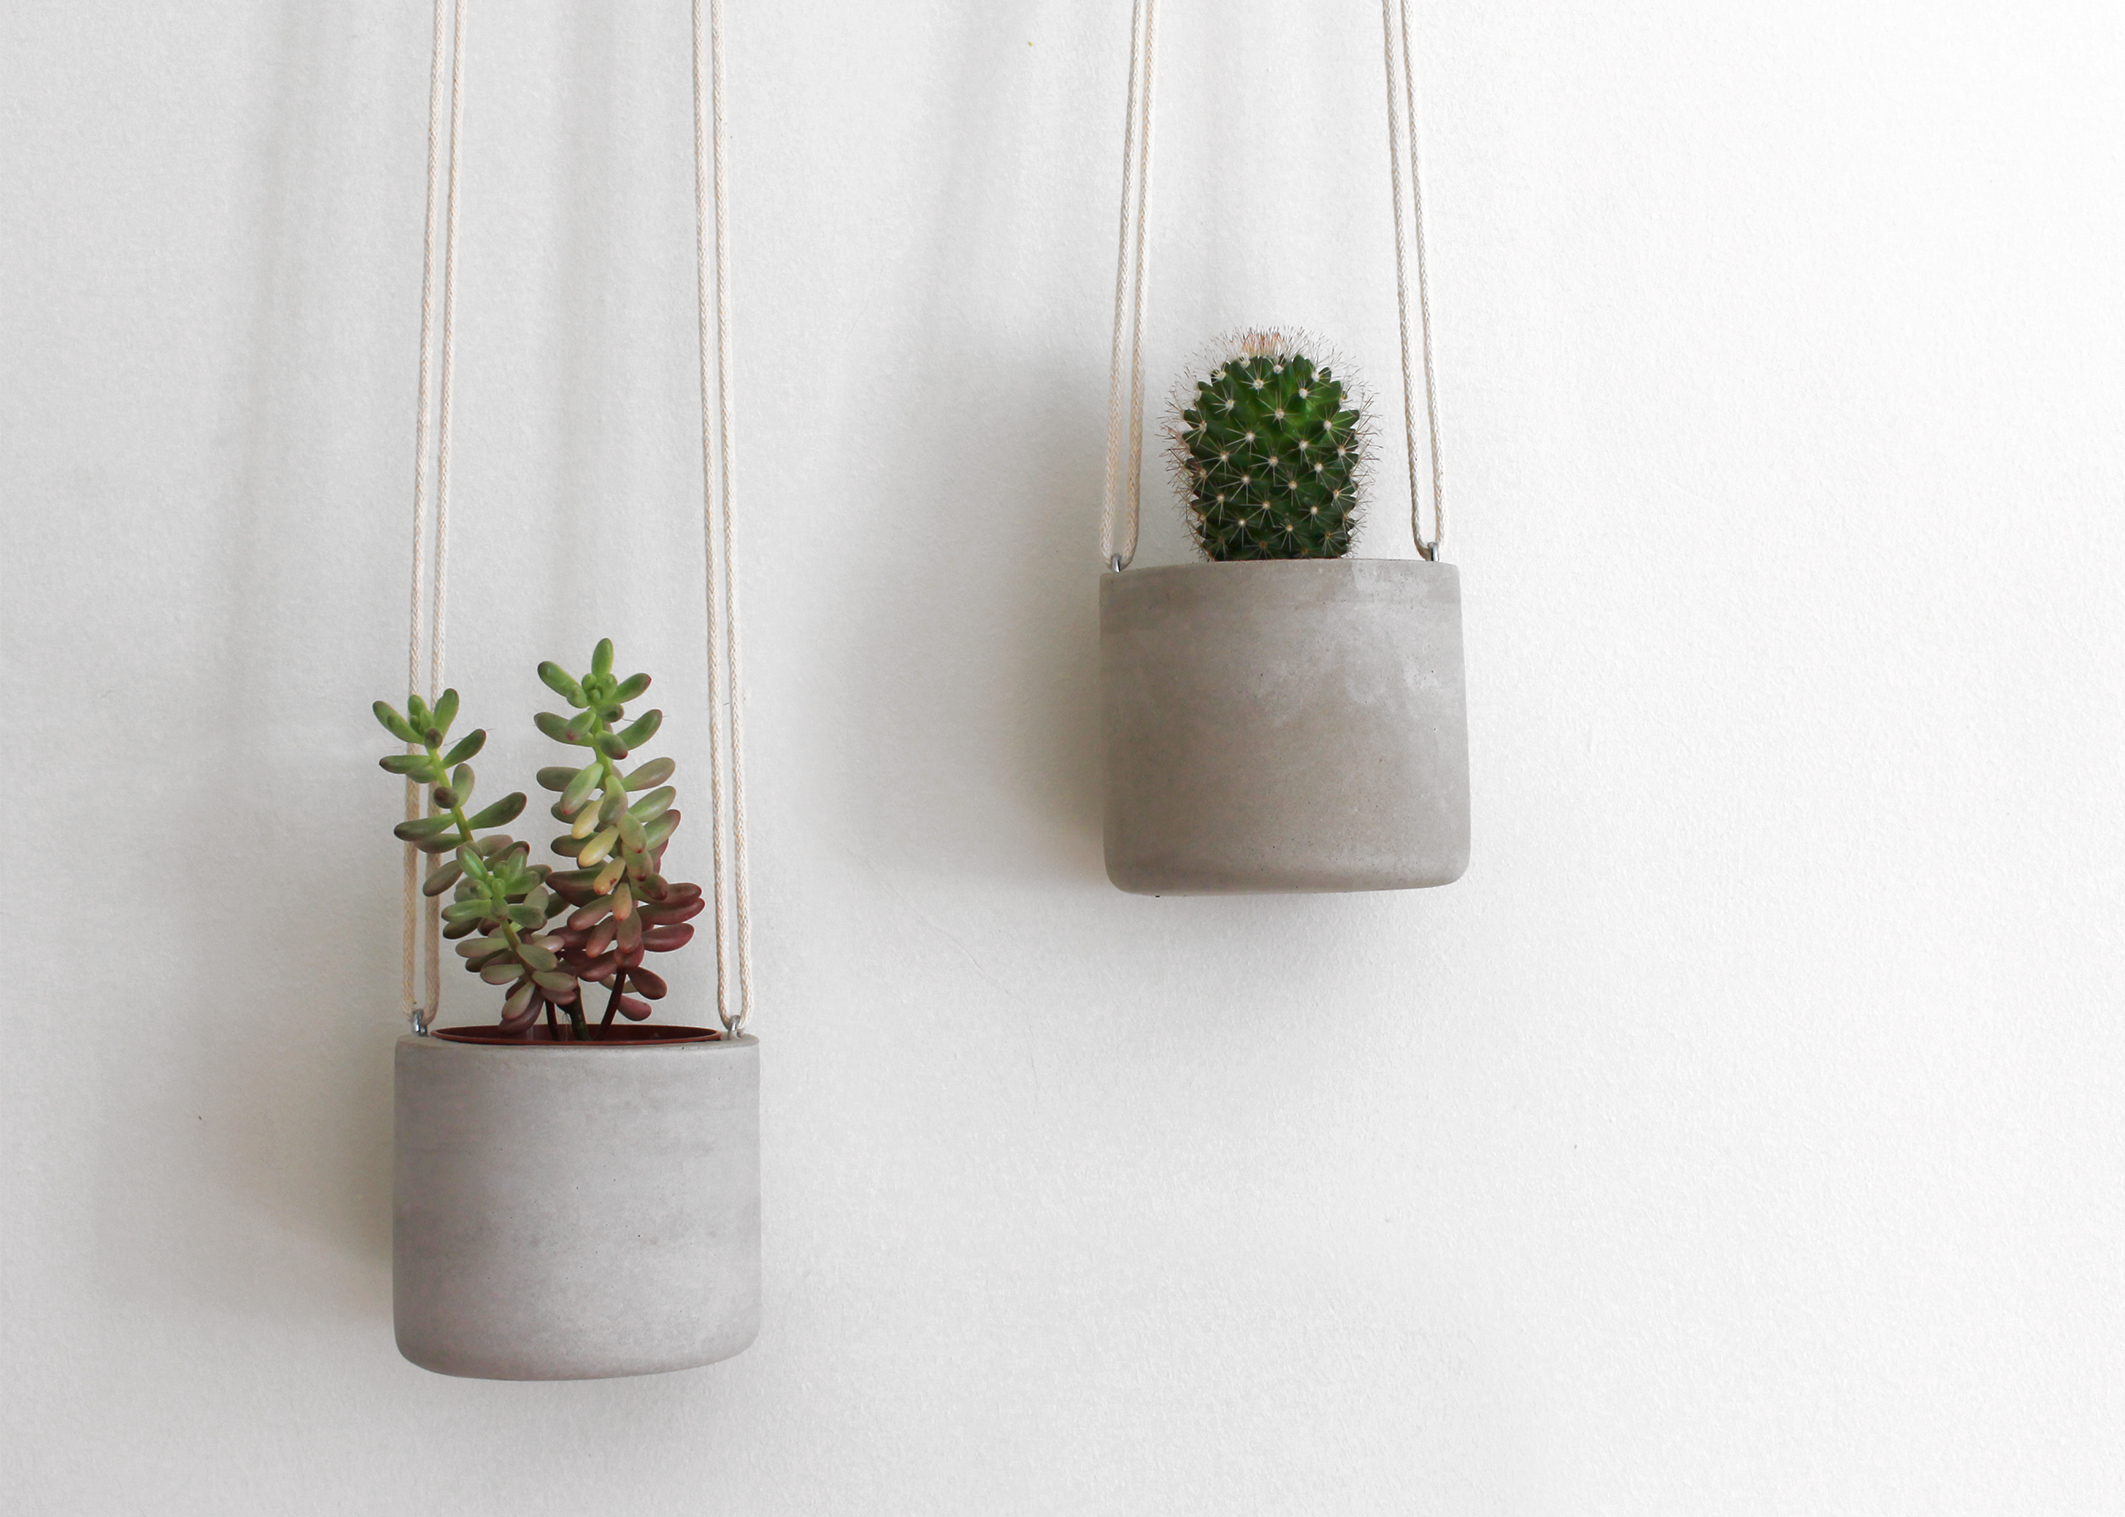 Mini hanging concrete planter, £19.95, Mint & May